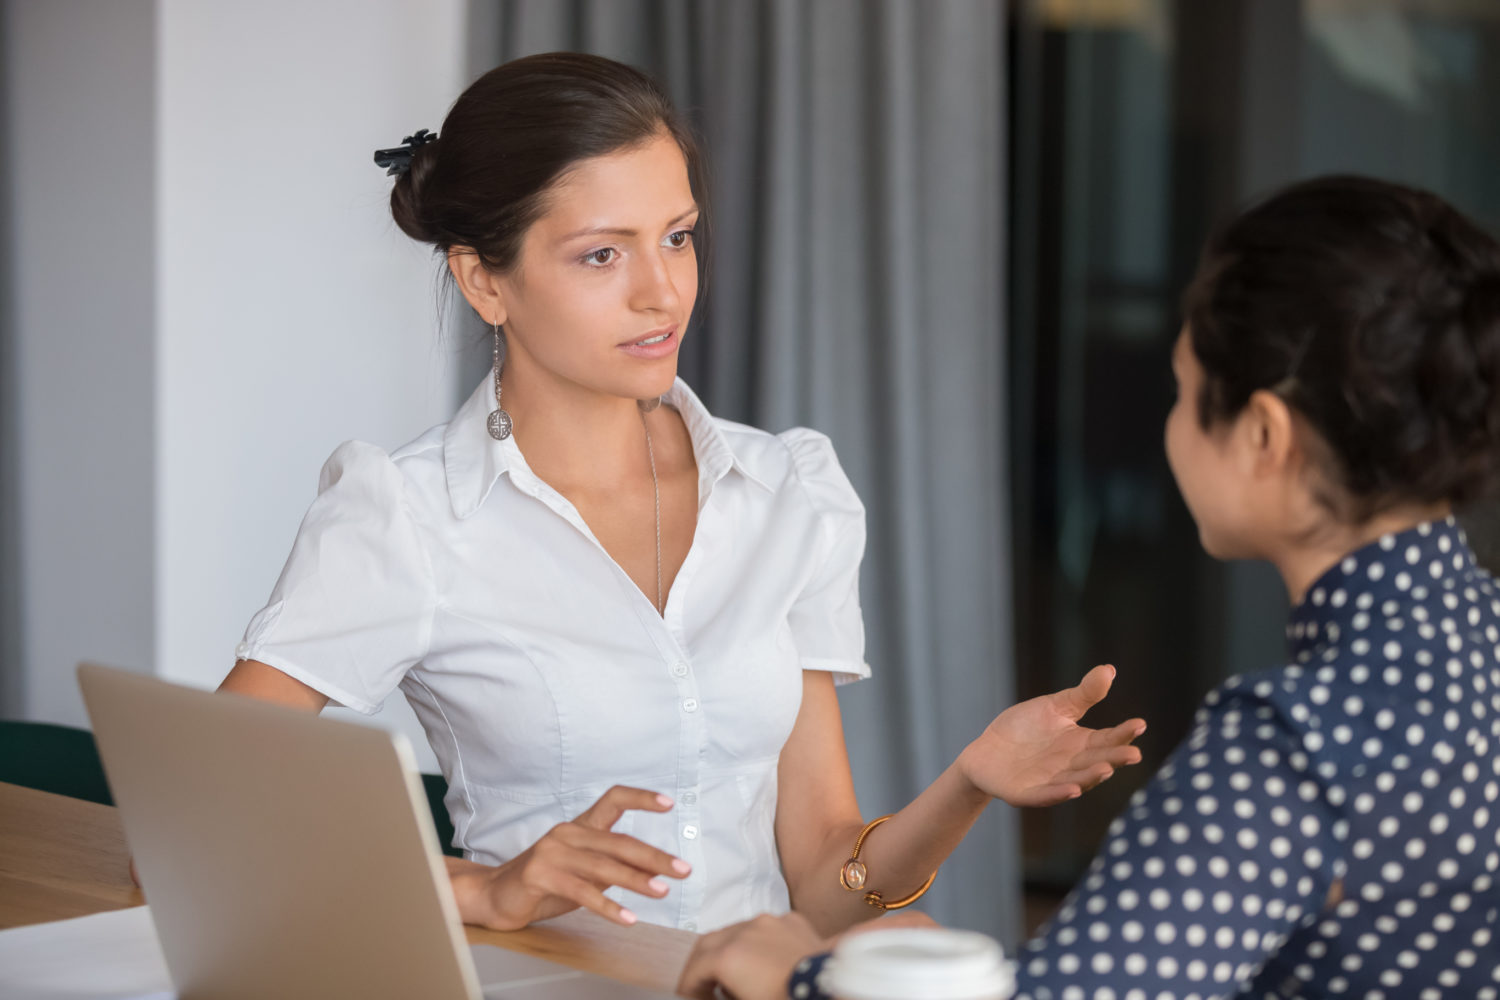 Female manager talking to employee with serious expression